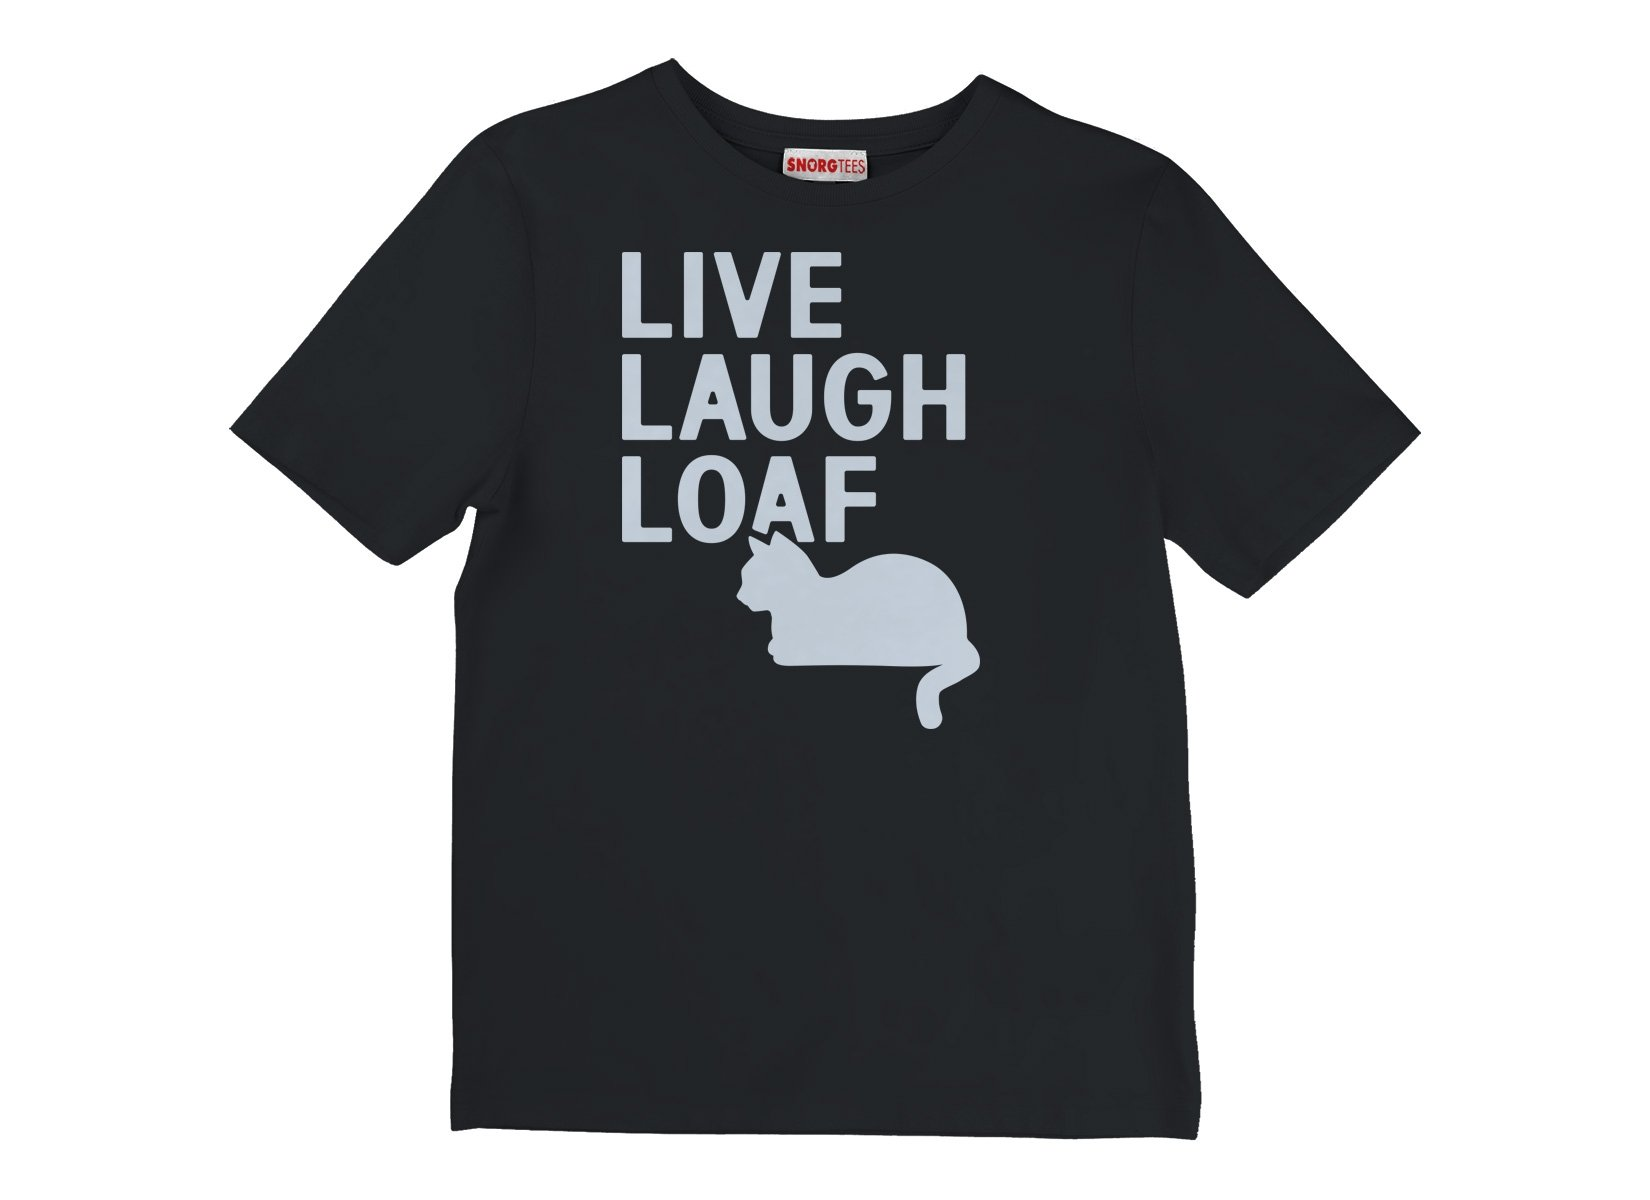 Live Laugh Loaf on Kids T-Shirt